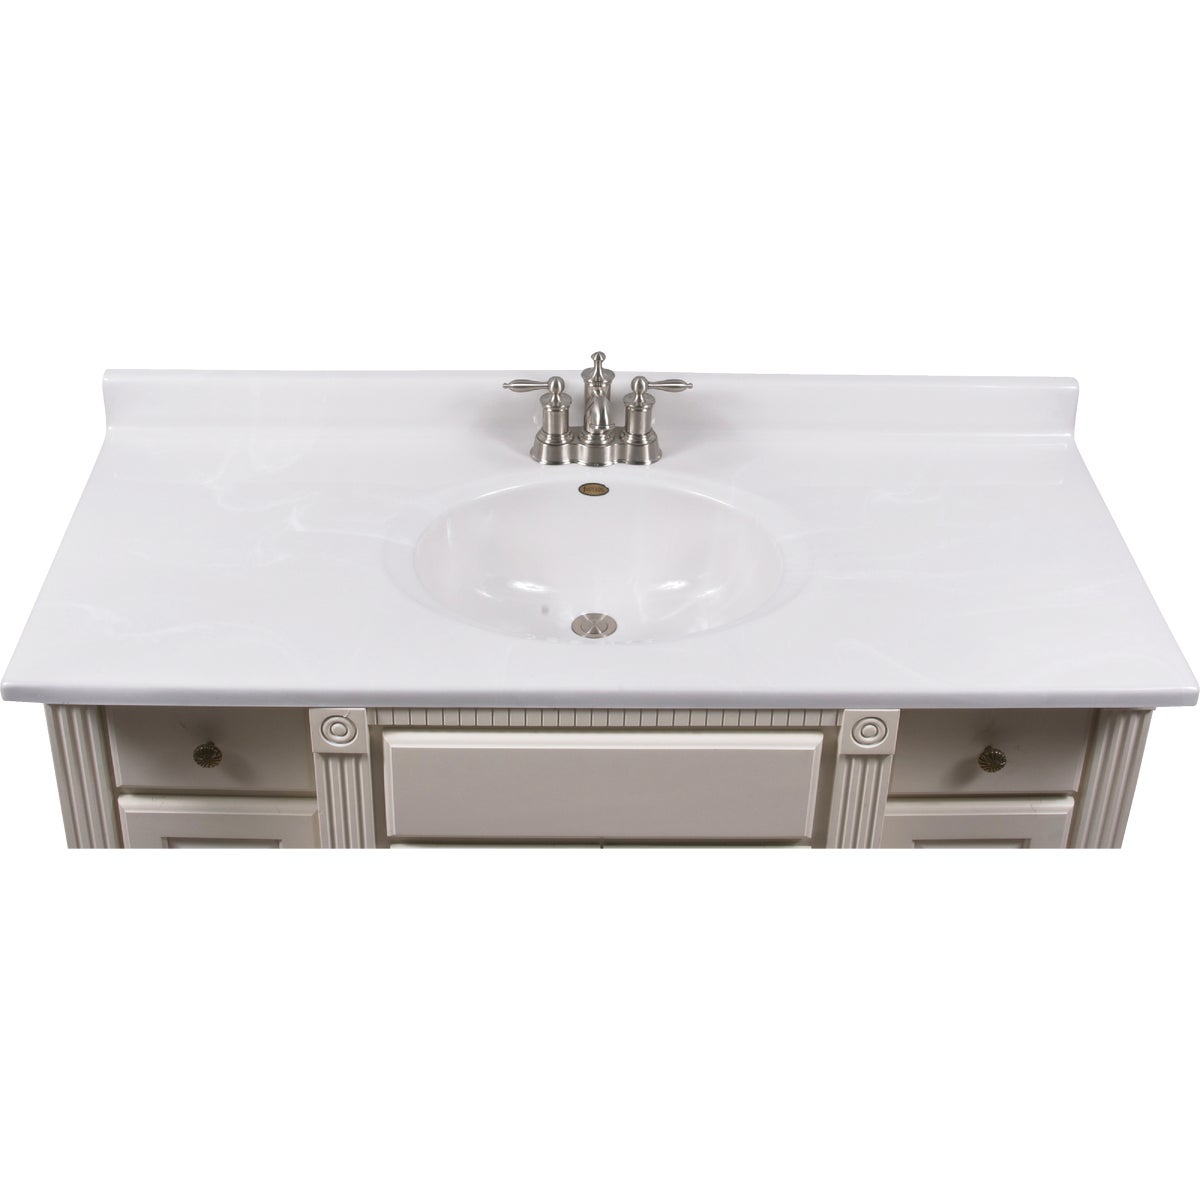 49X22 WHT/WHT VANITY TOP - VC4922W by Imperial Marble Corp